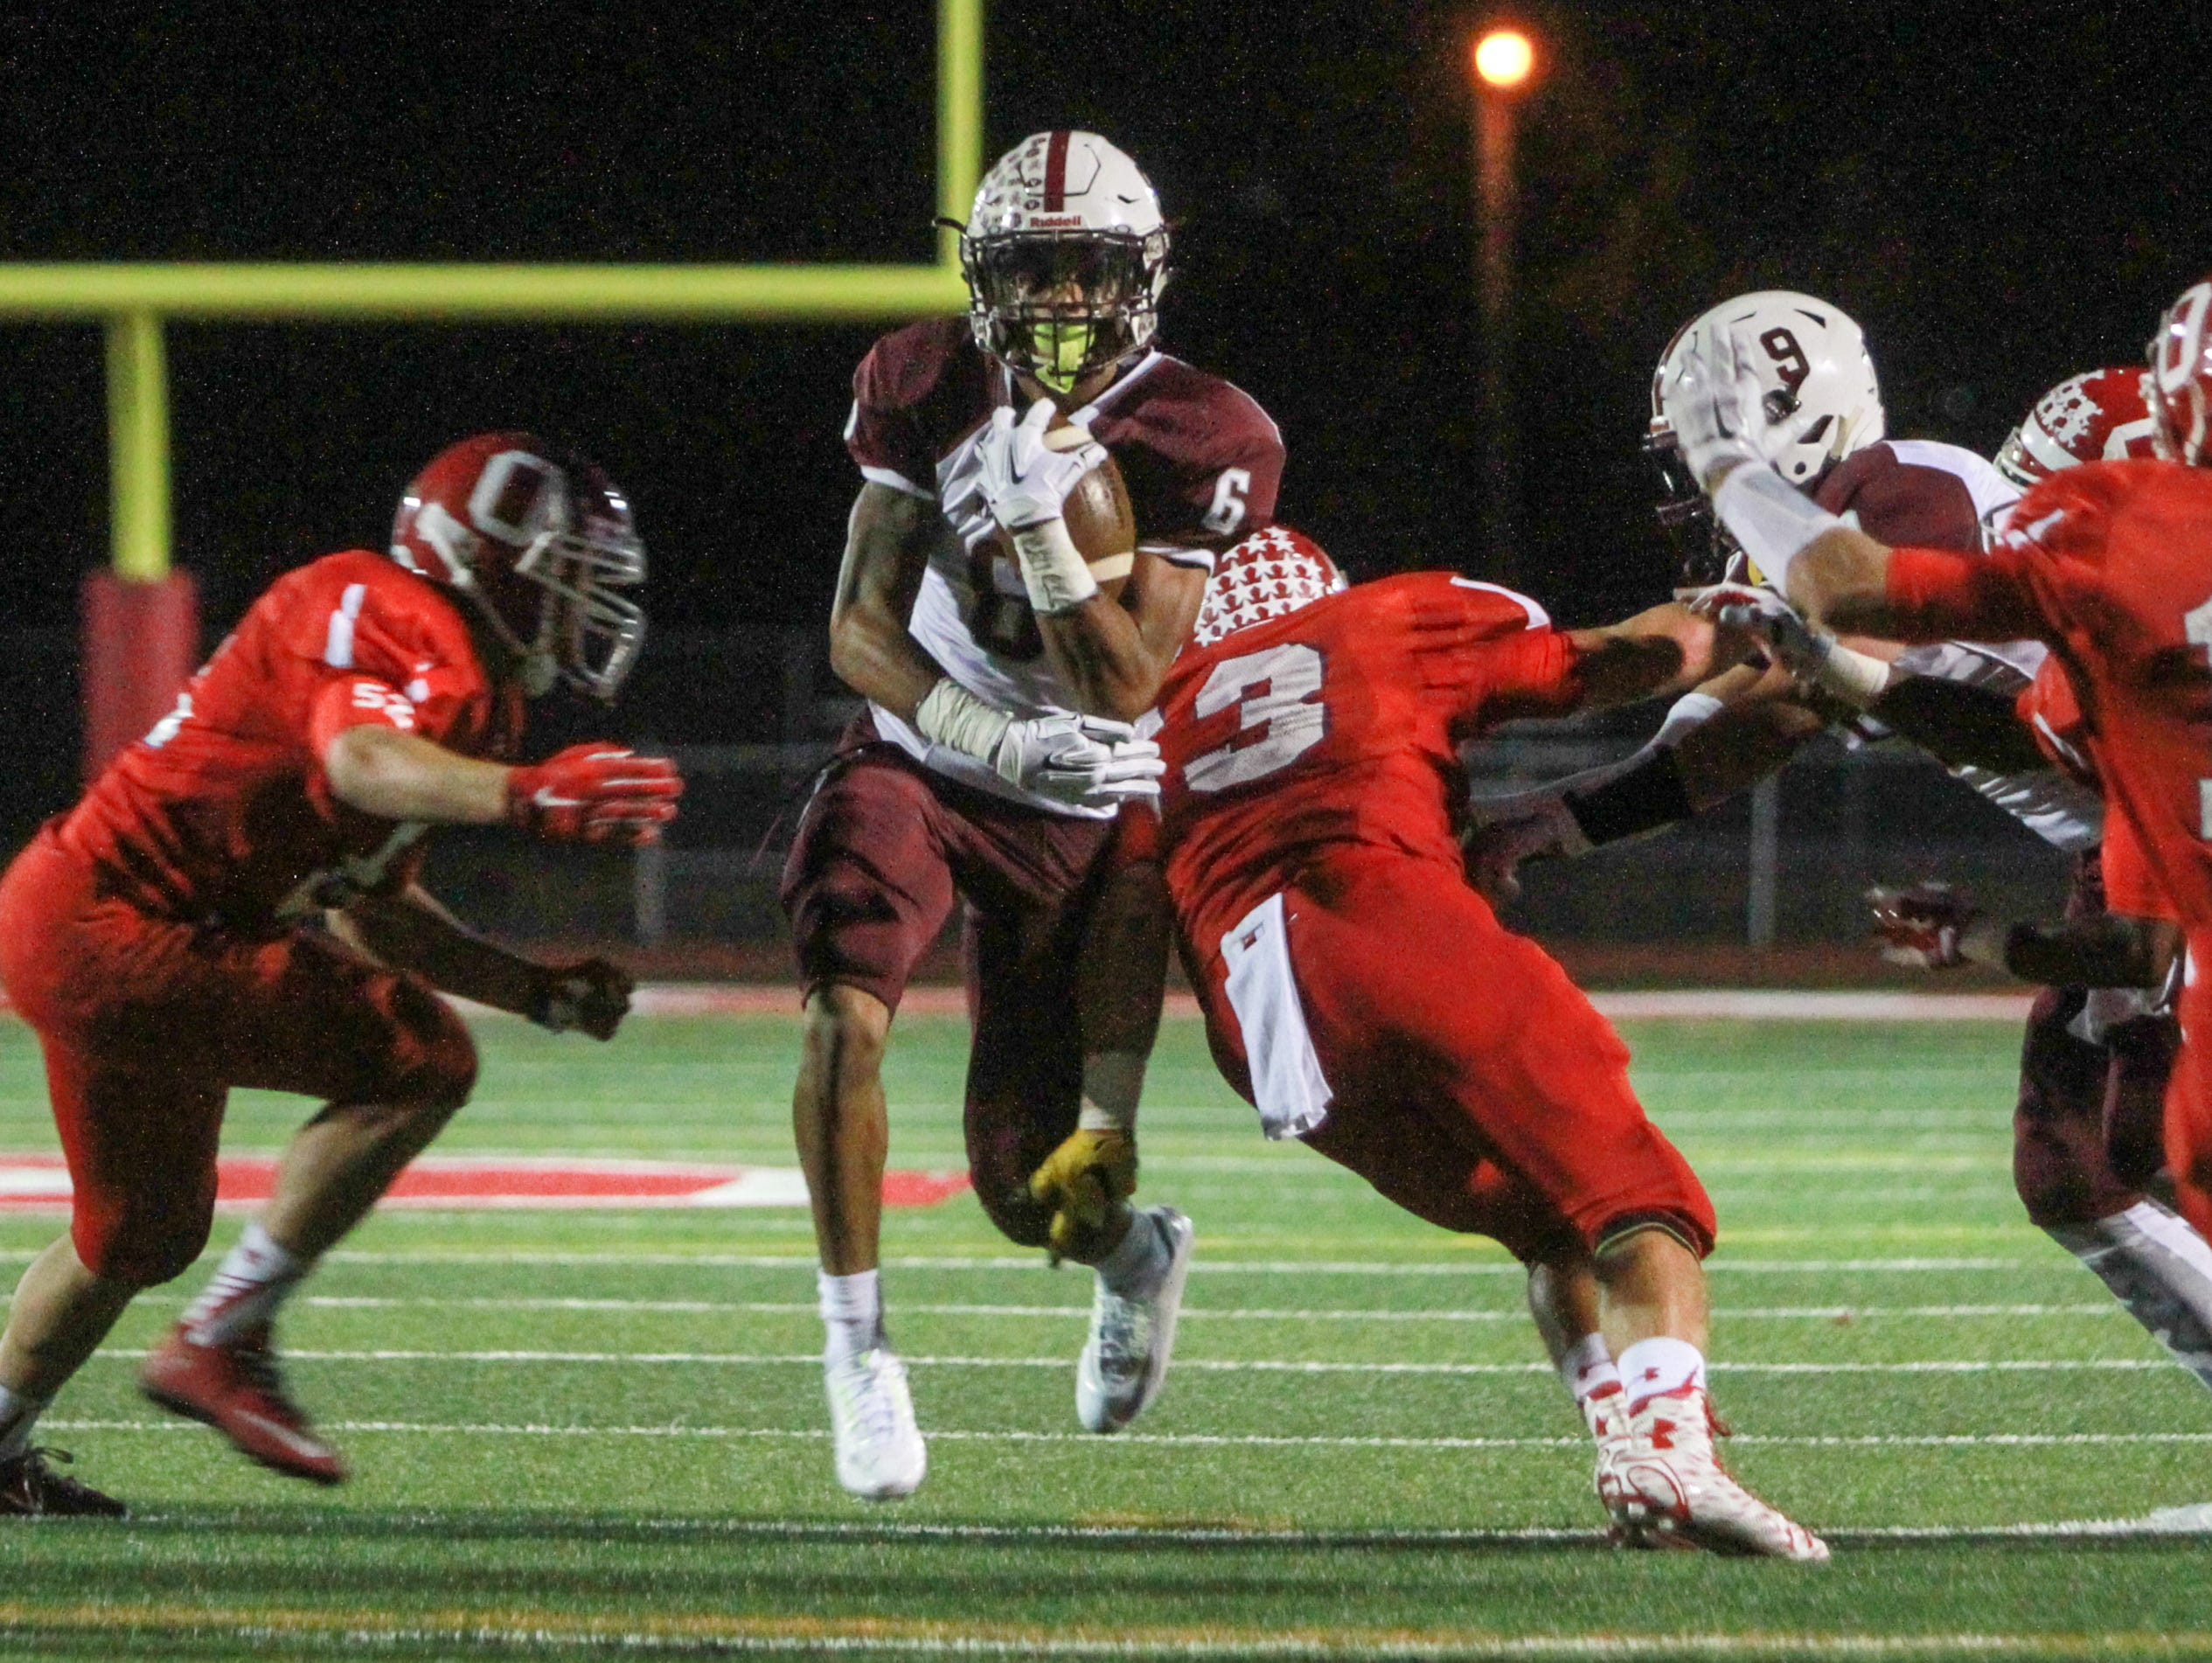 Ocean, NJ Red Bank at Ocean Friday night football. Red Banks #6 Sadig Palmer carries the ball in the first quarter. 092415